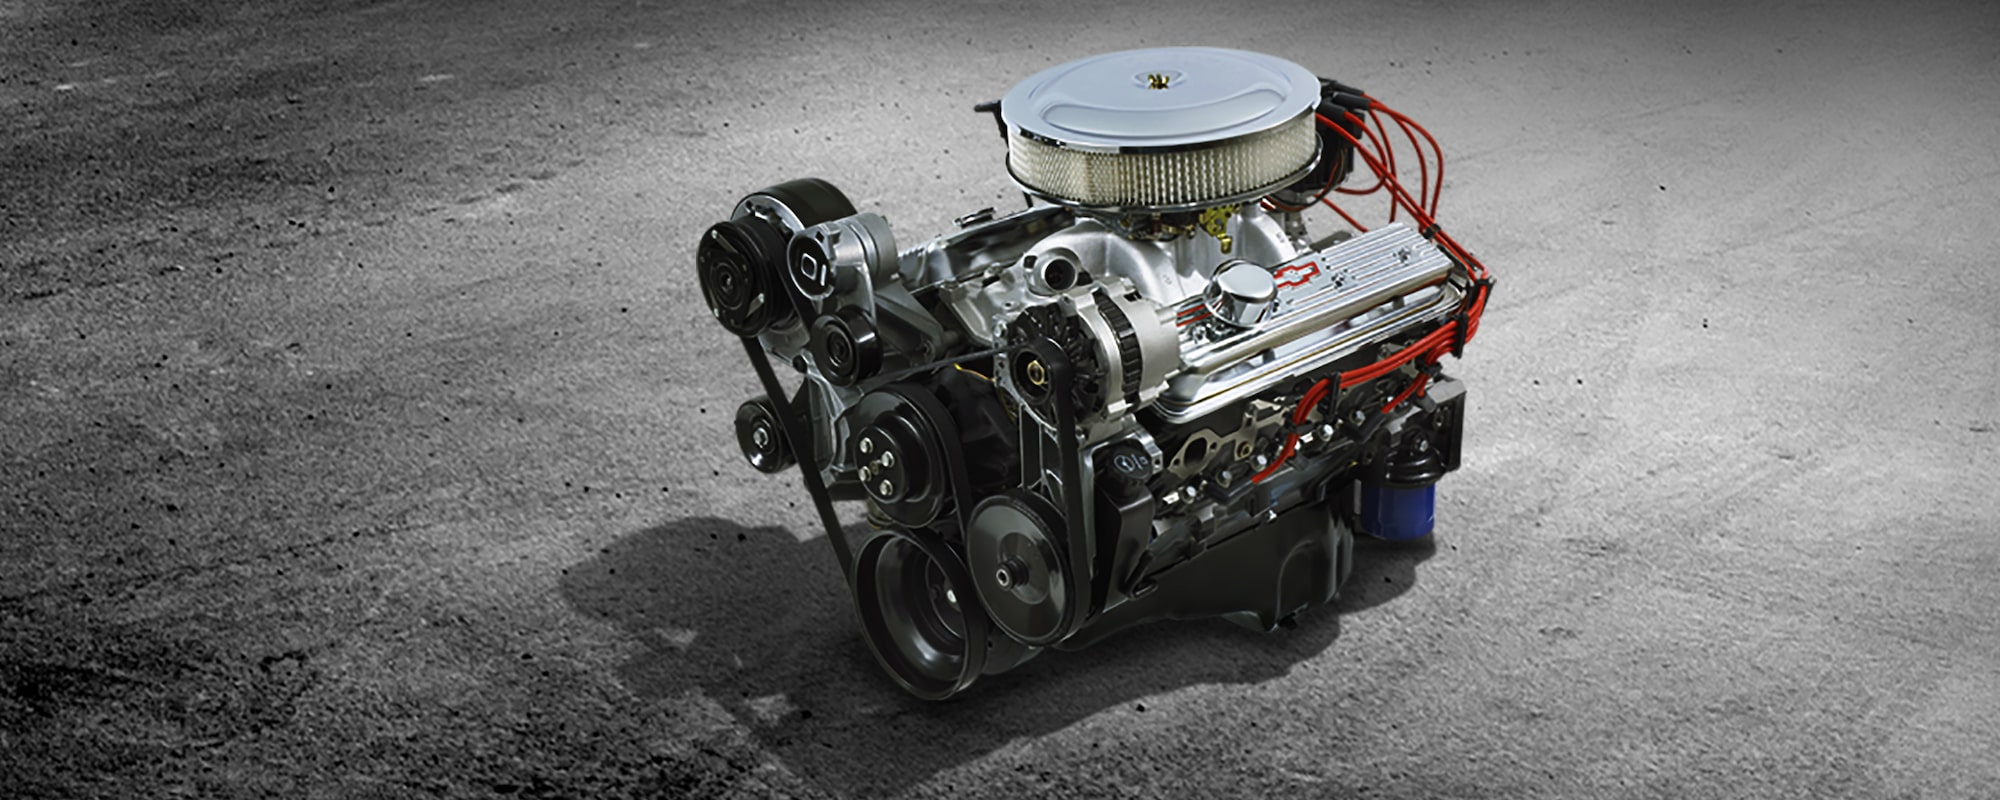 350 ho small block crate engine chevrolet performance 1977 chevy small block motor wiring [ 2500 x 1000 Pixel ]